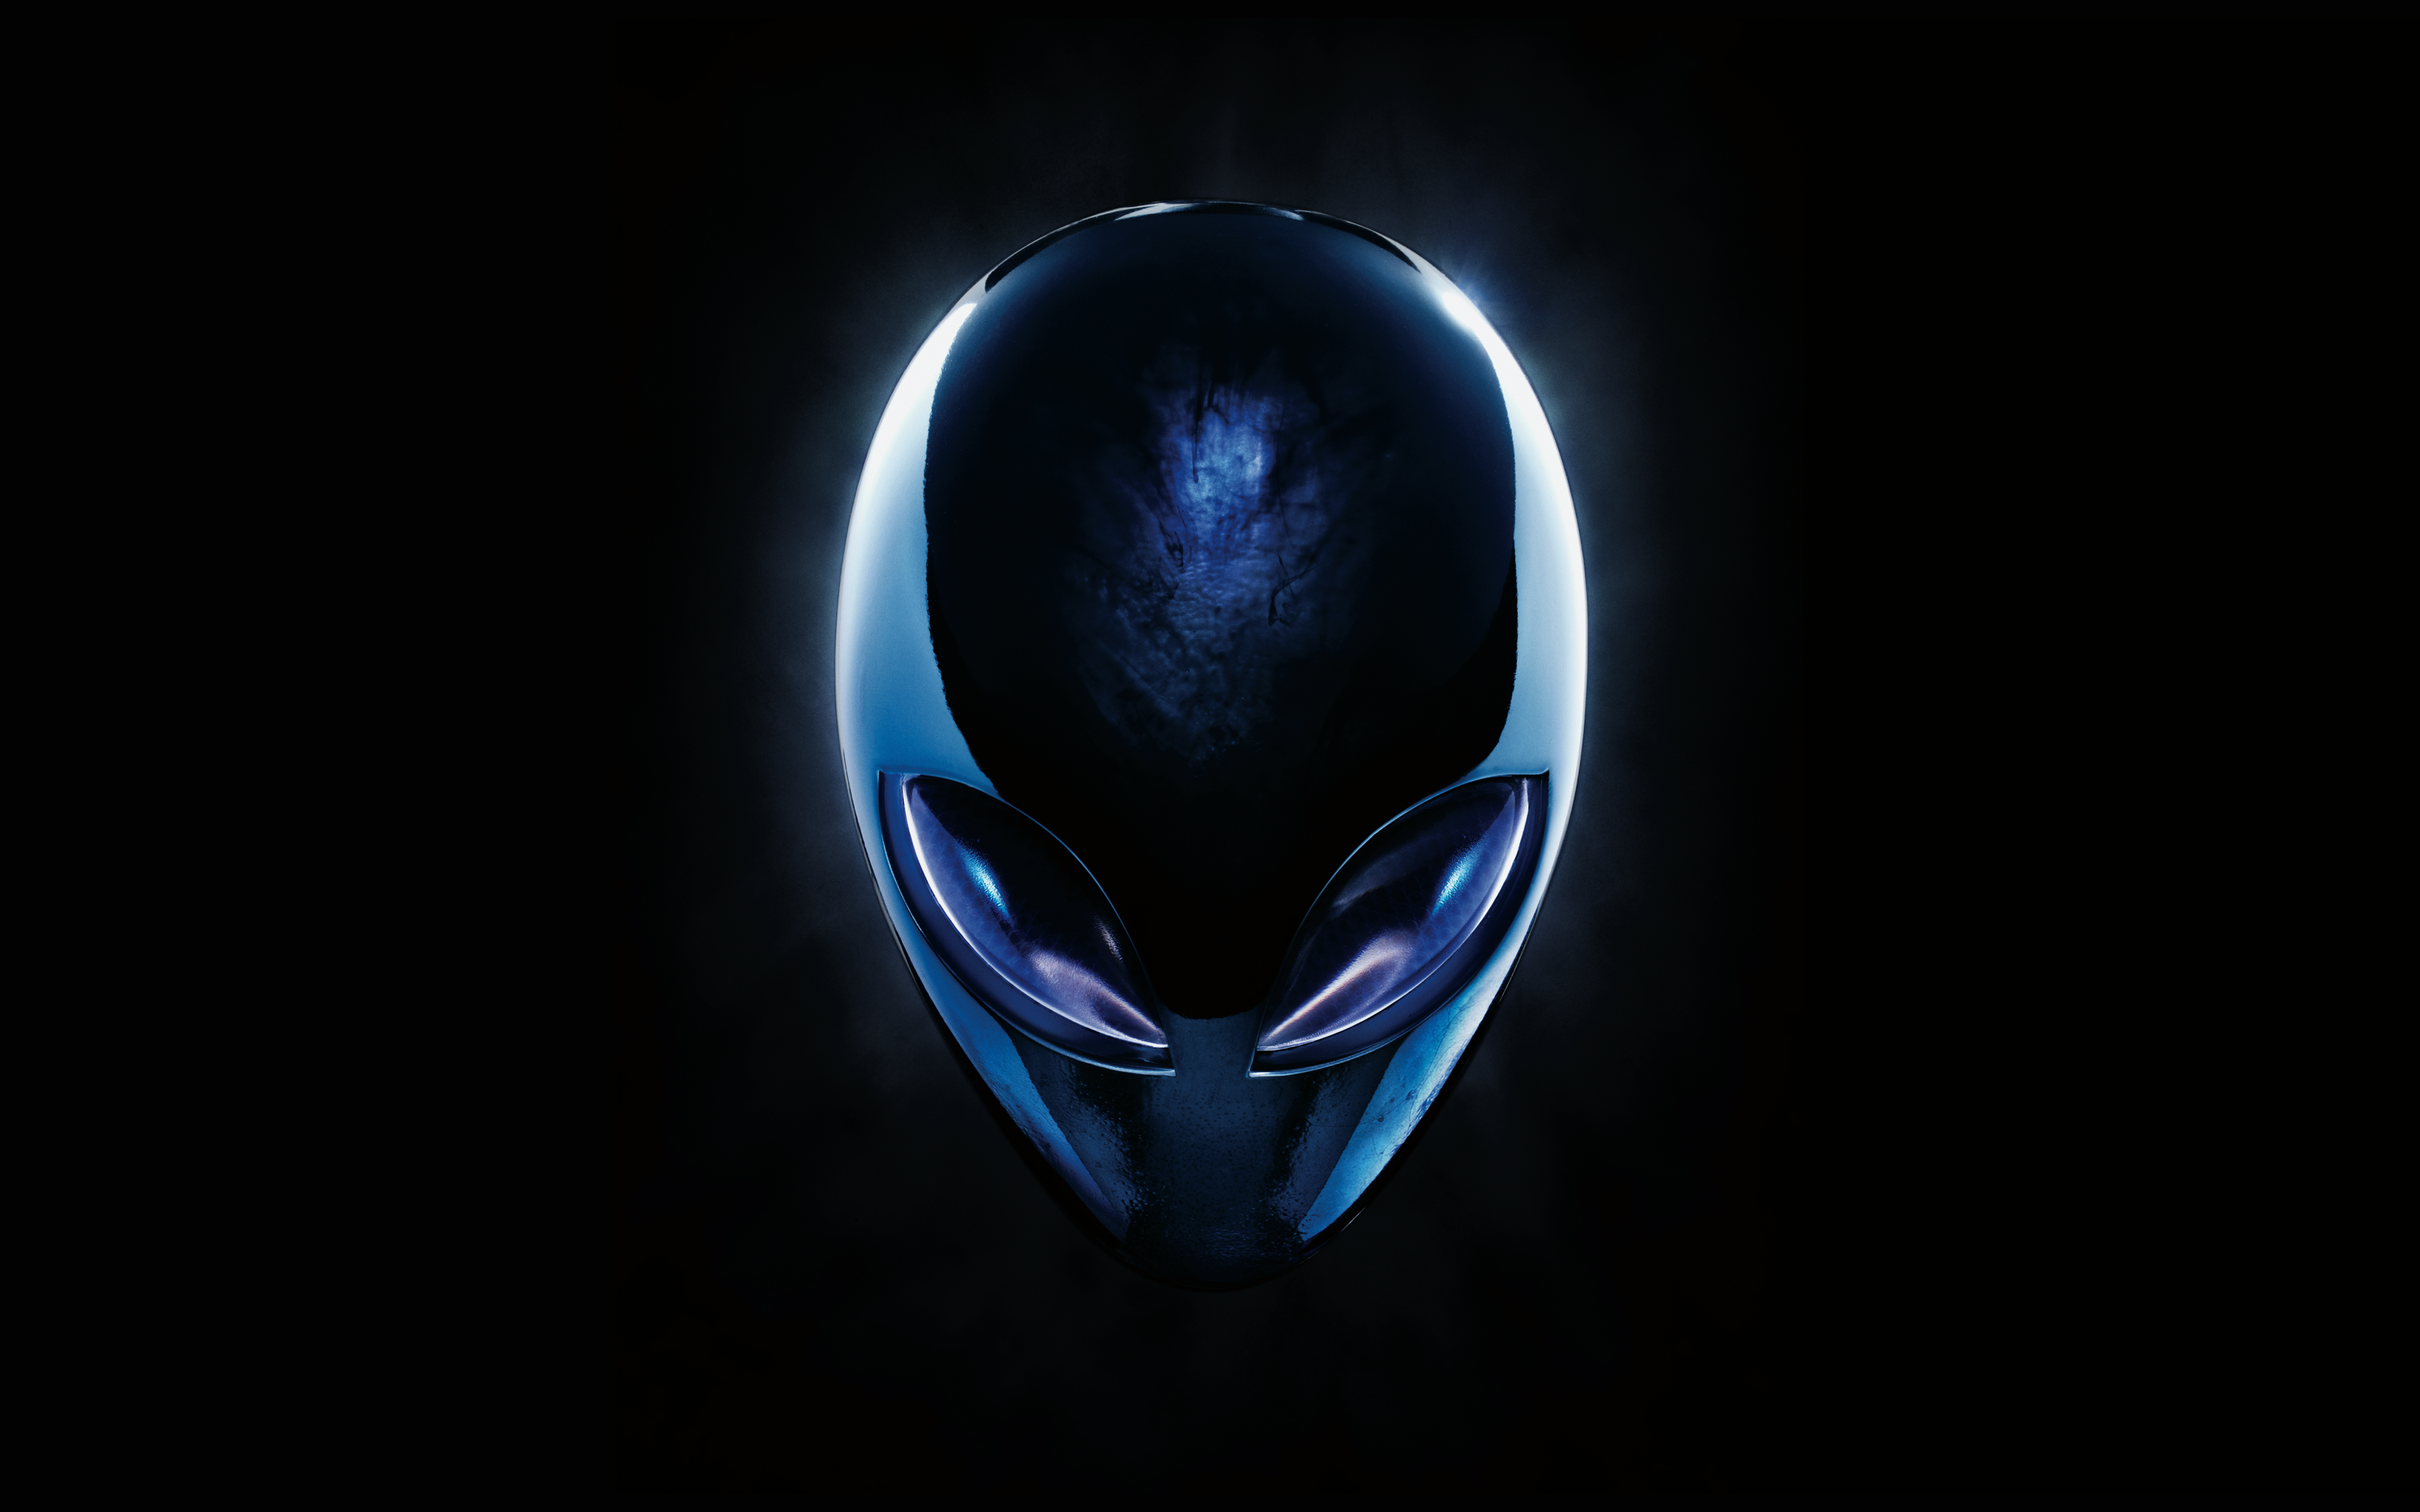 alienware wallpaper alienware theme for windows 7 alienware 3360x2100